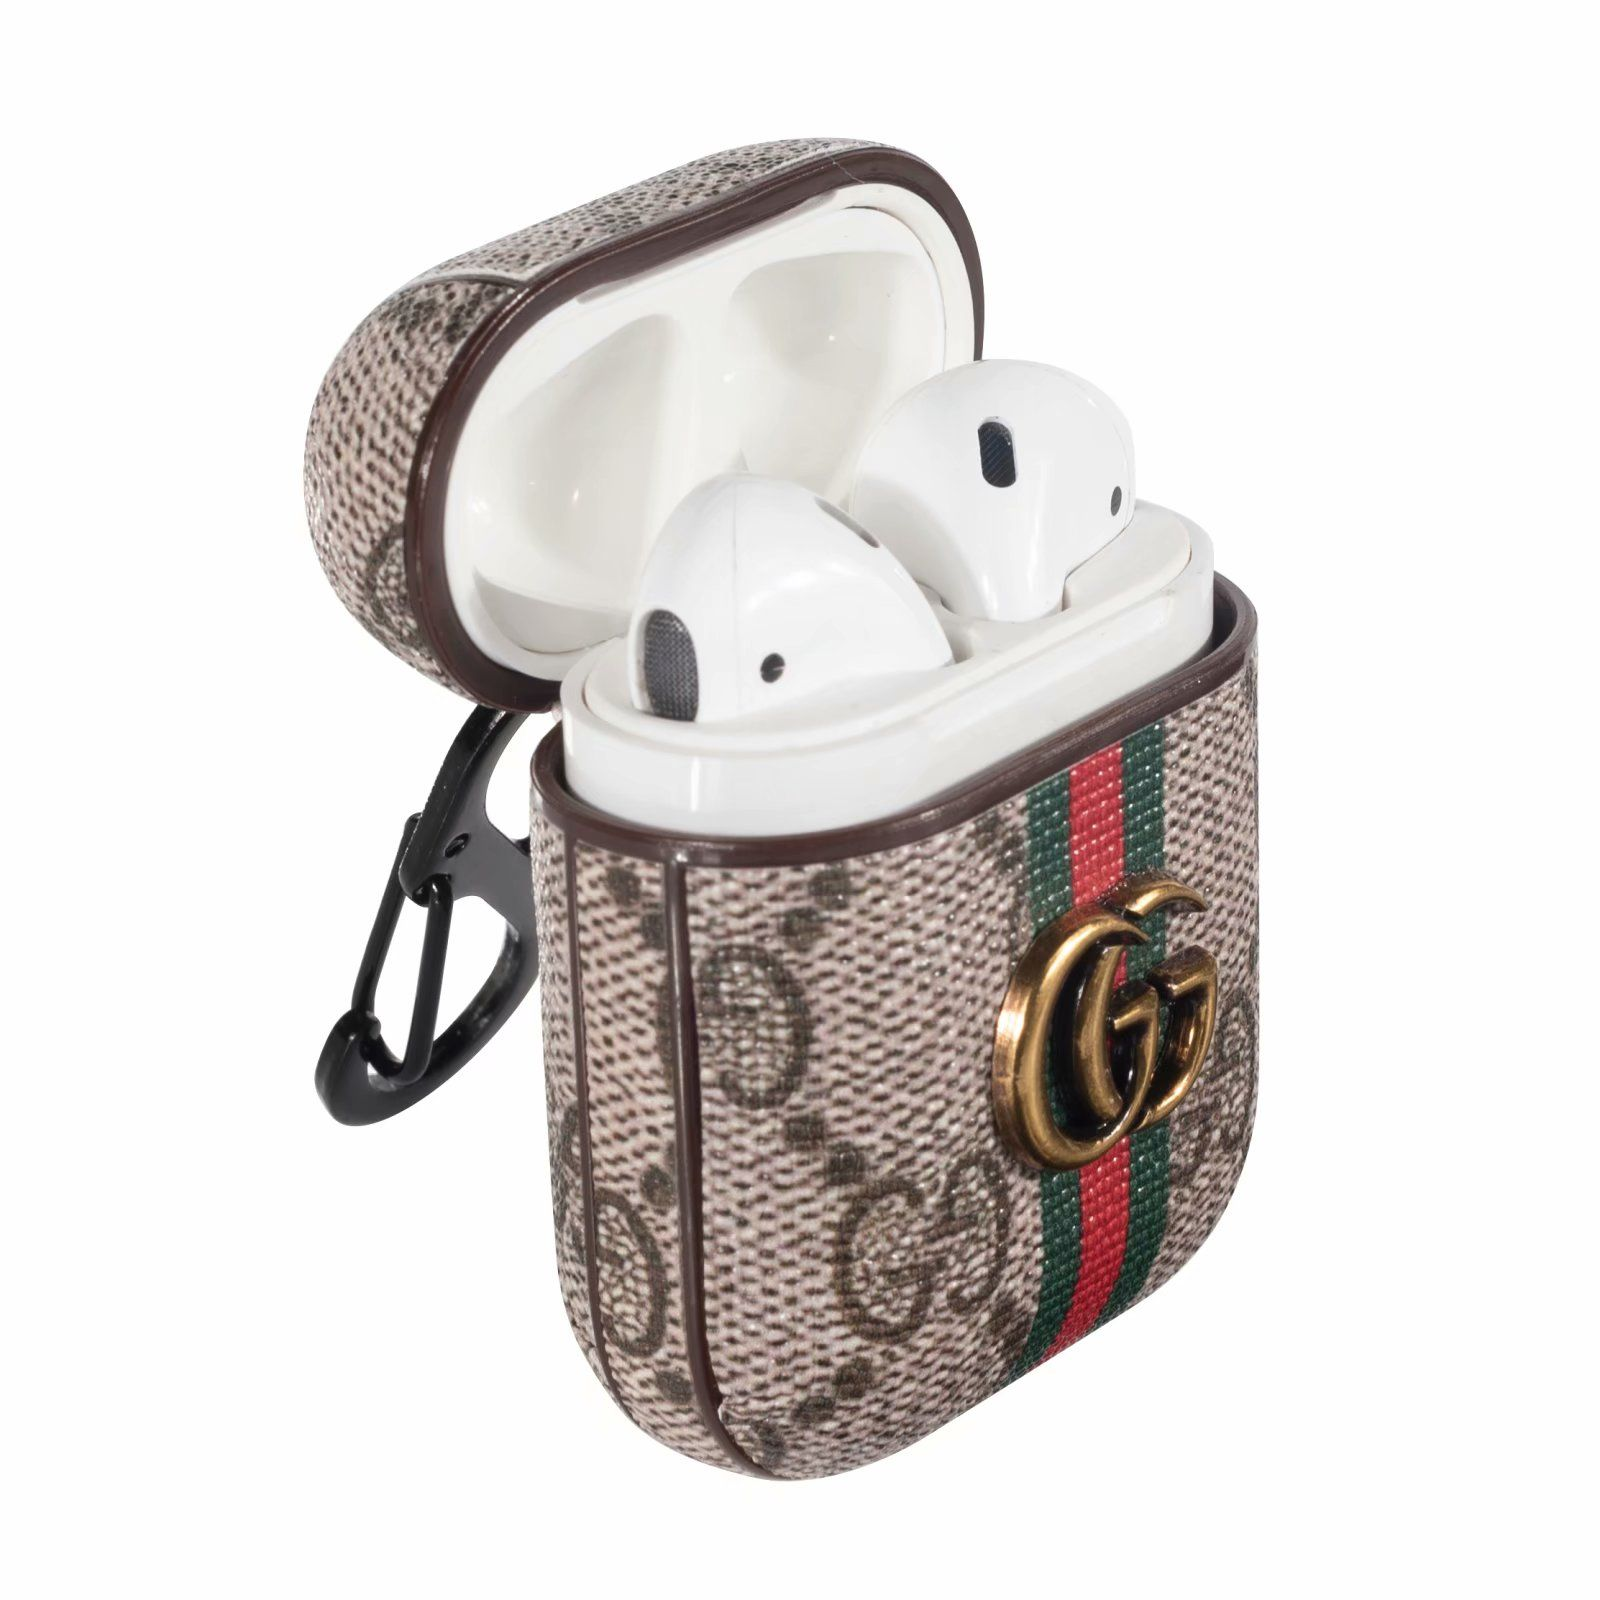 Airpods Leather Gucci Case Airpod Case Gucci Fashion Leather